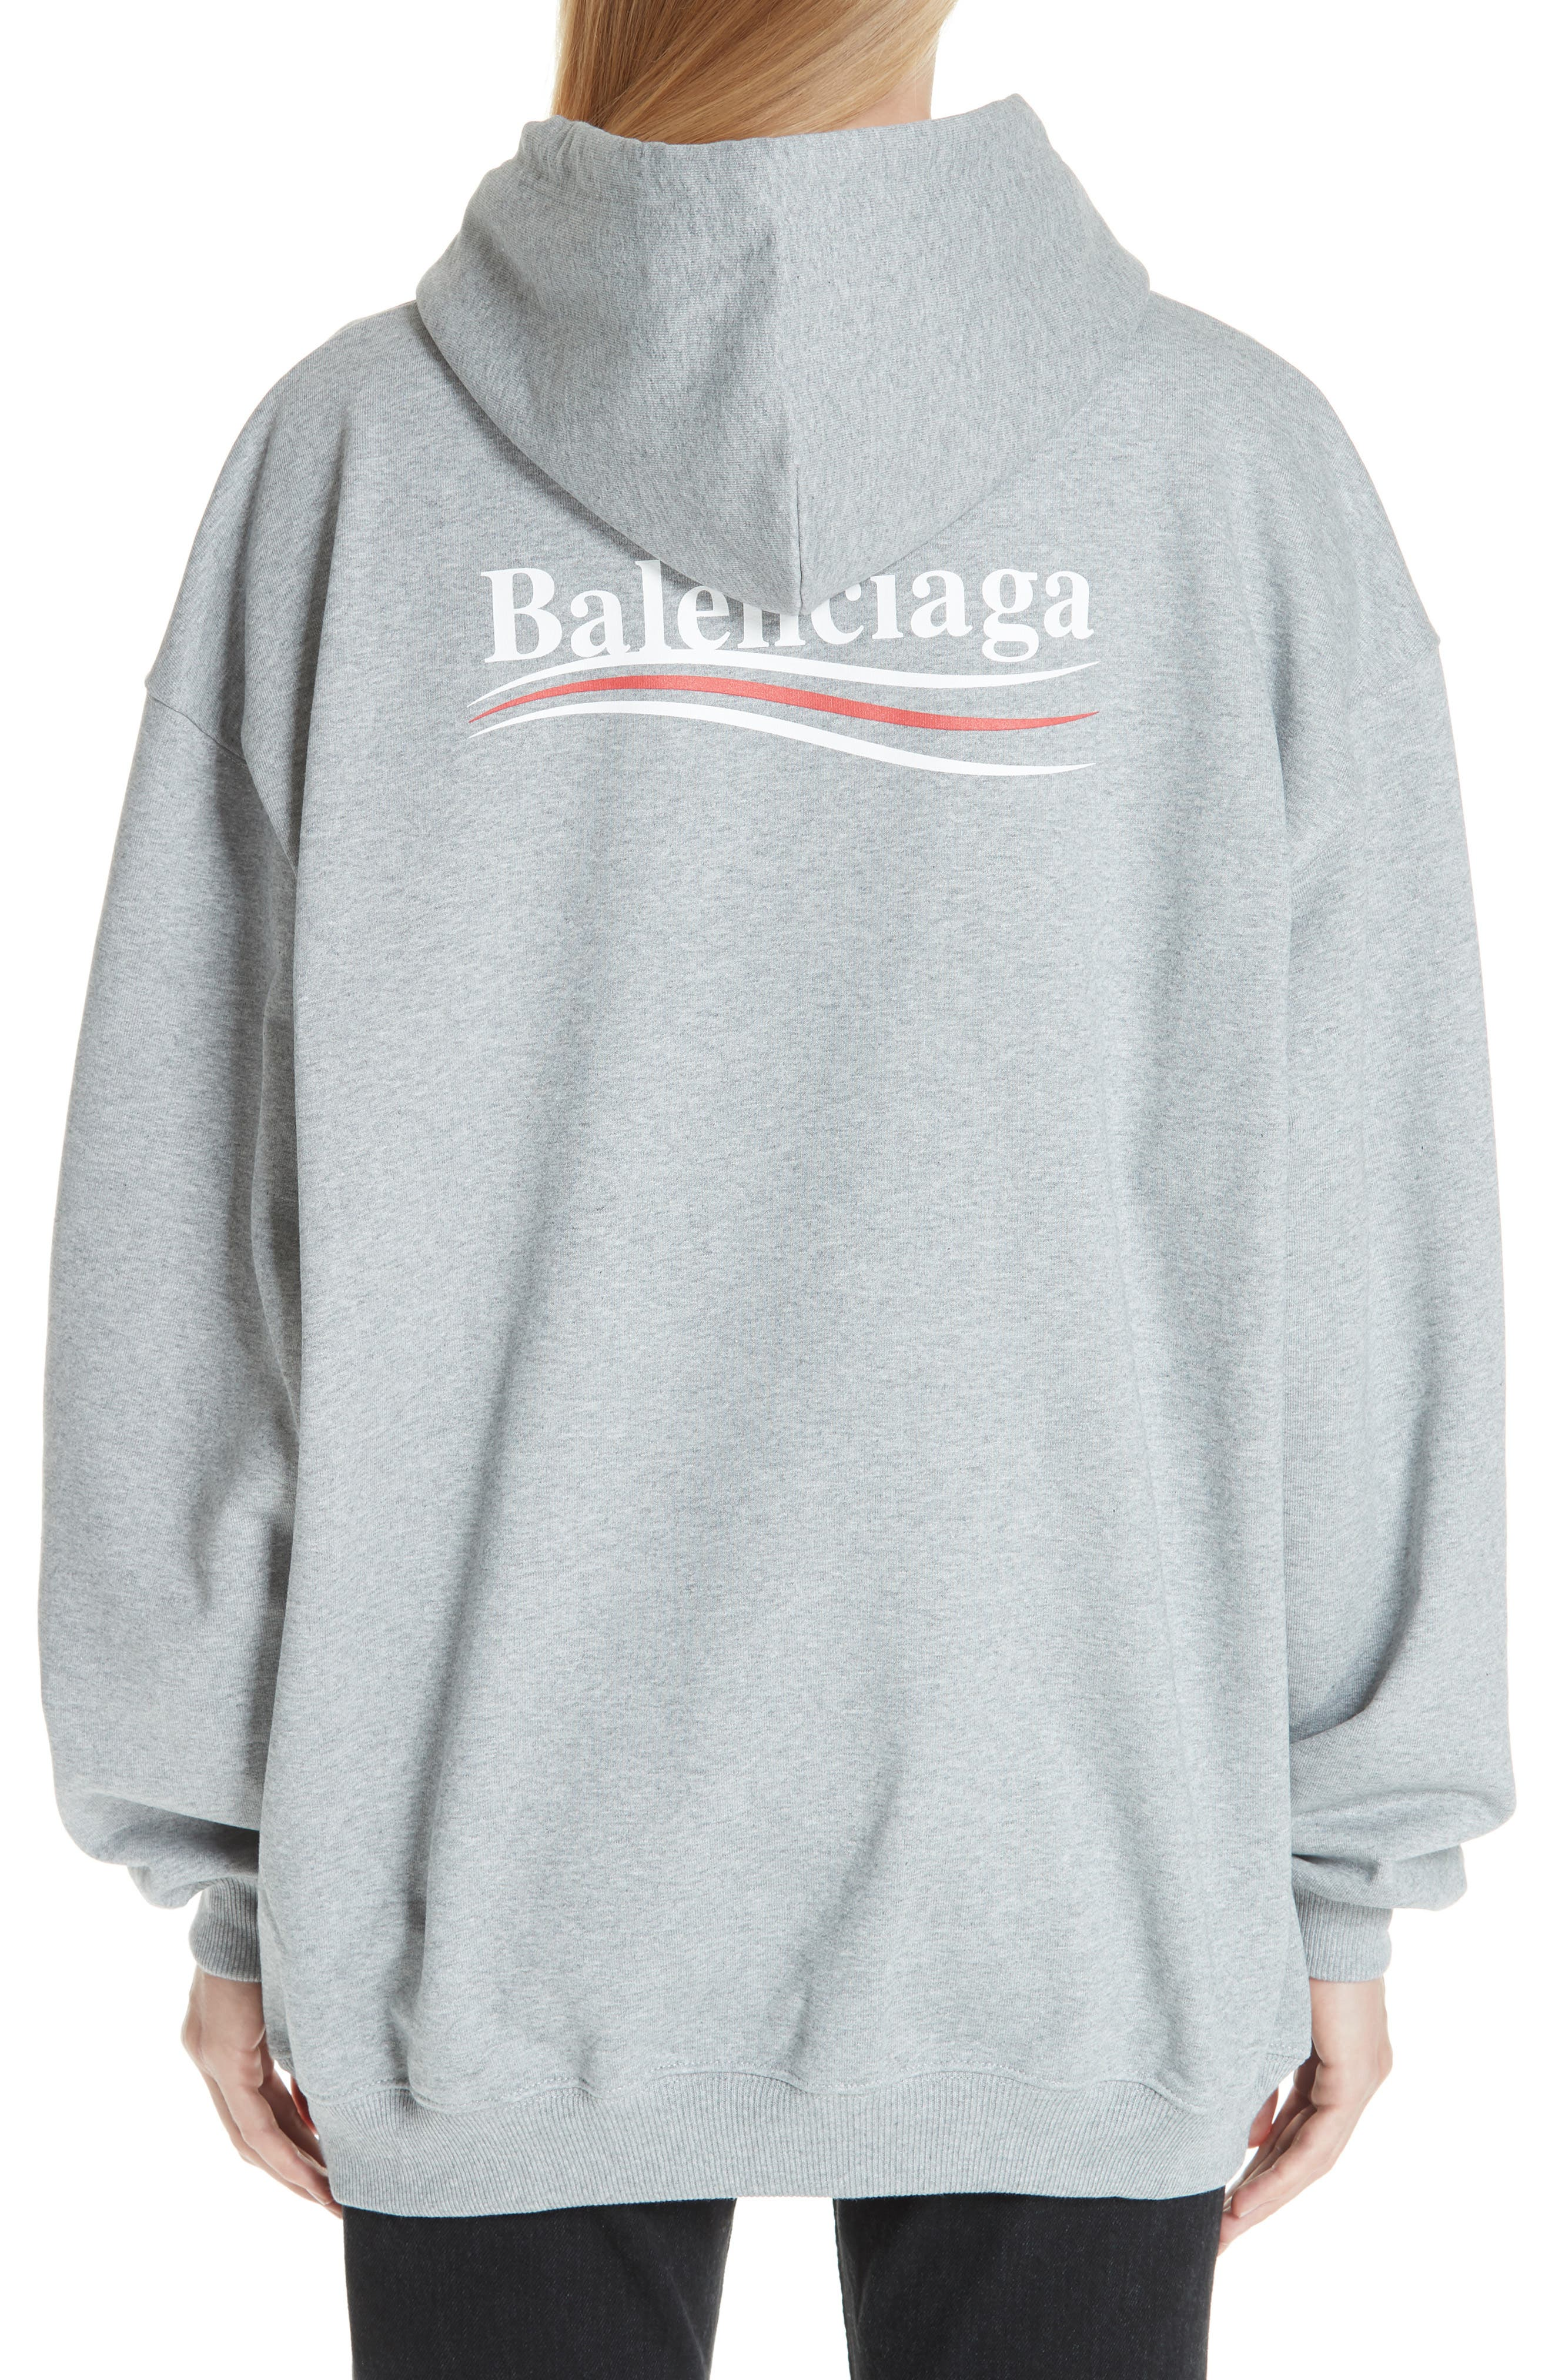 Campaign Logo Hoodie,                             Alternate thumbnail 2, color,                             020